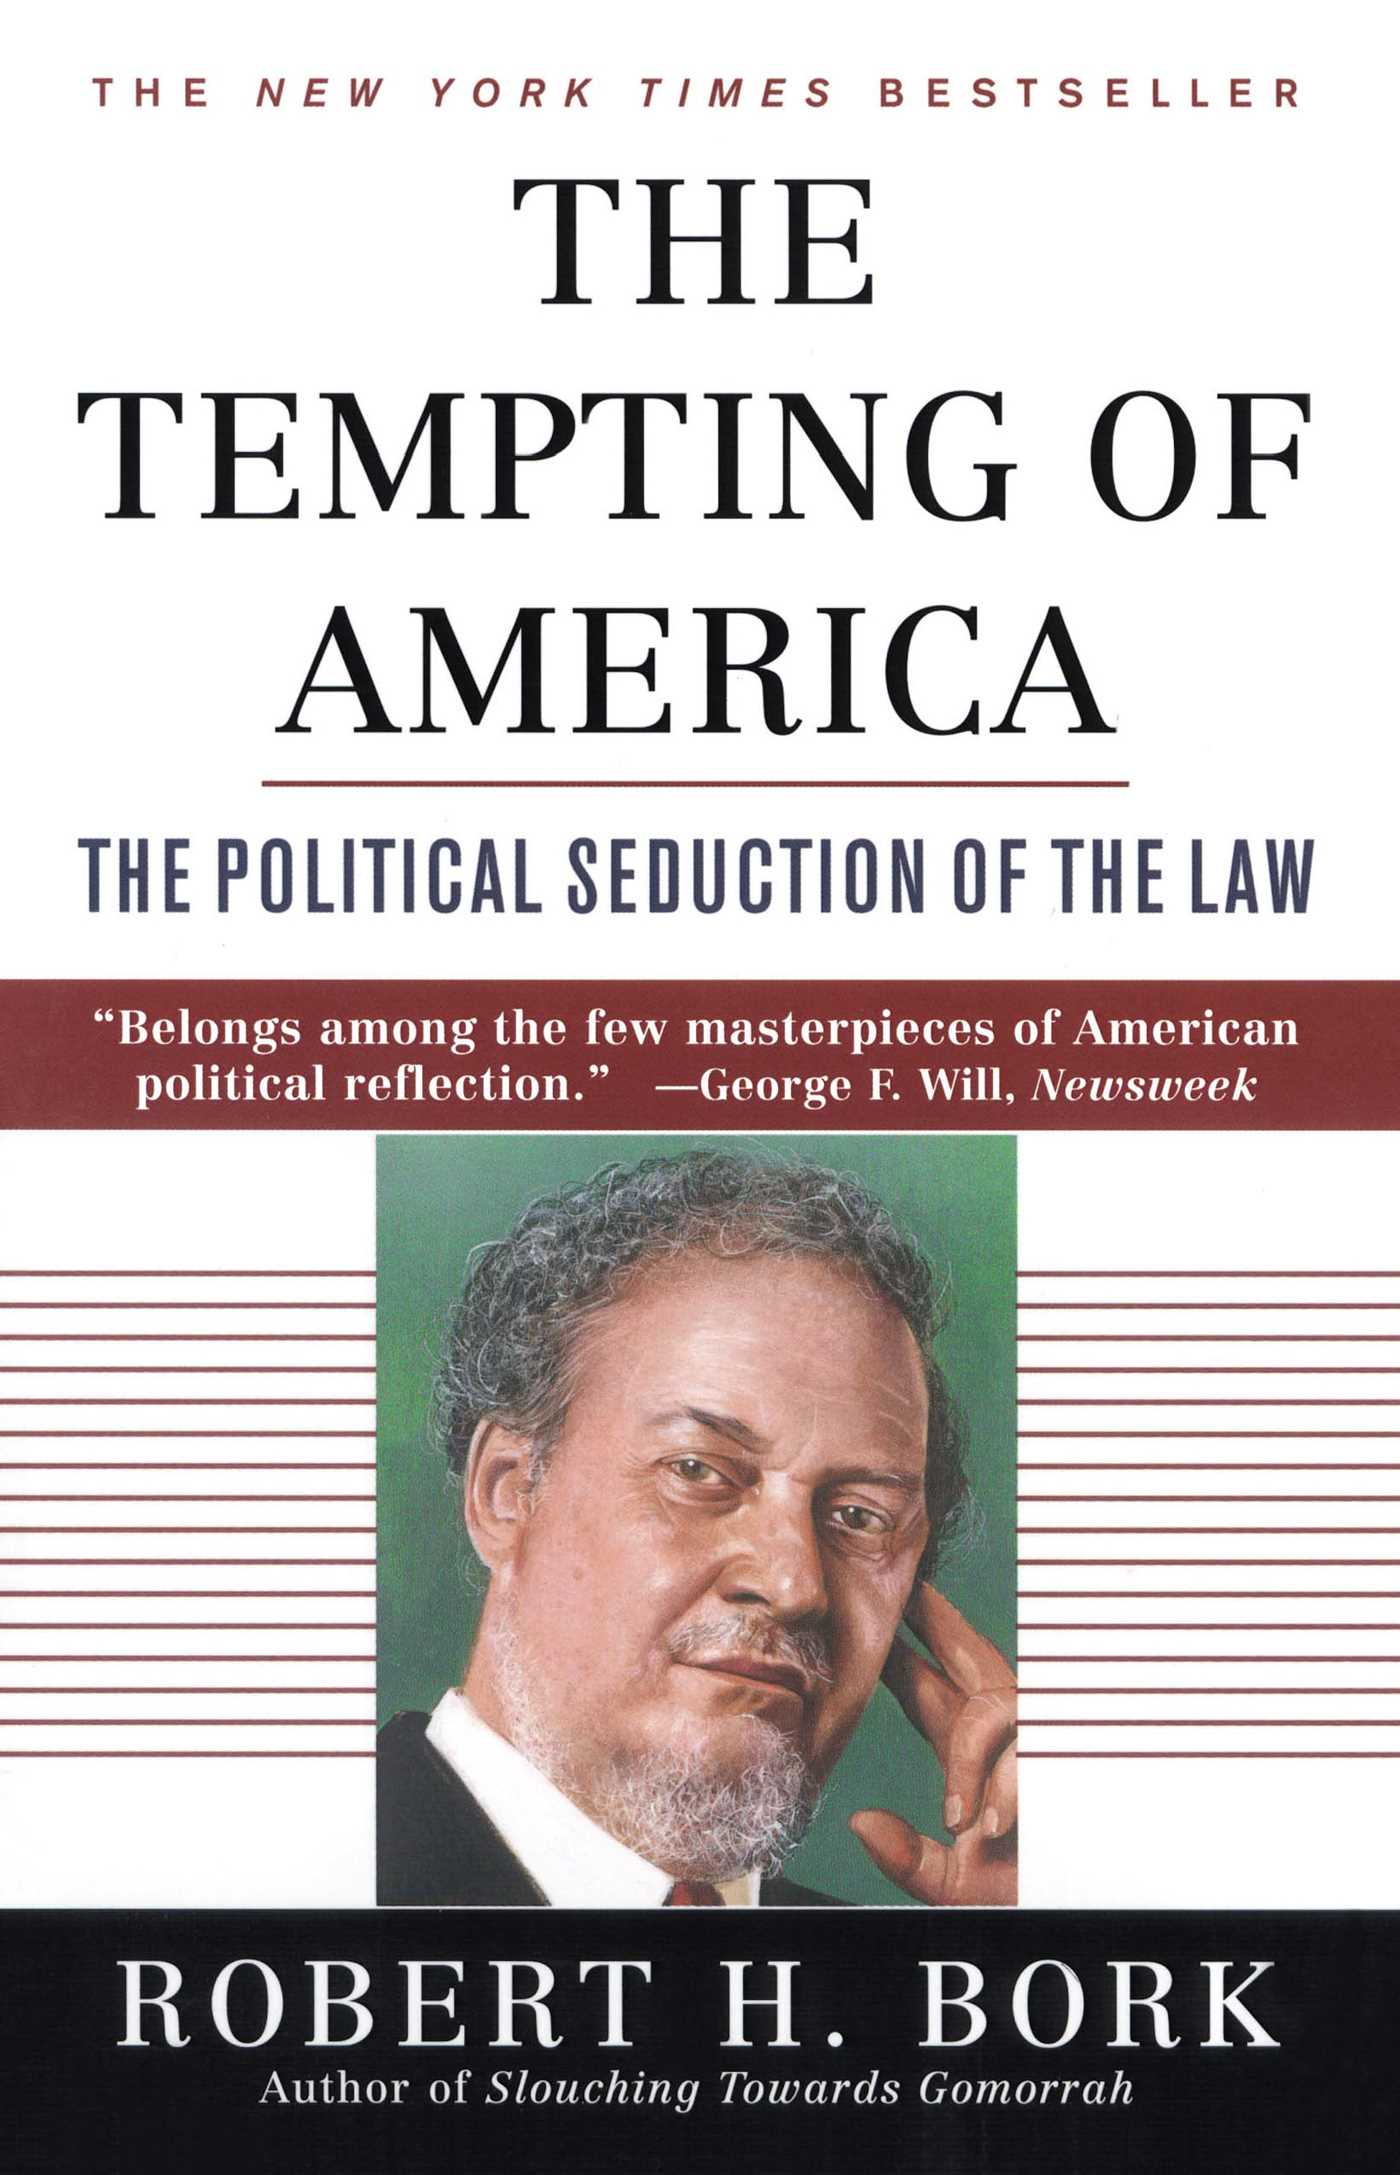 The tempting of america 9780684843377 hr